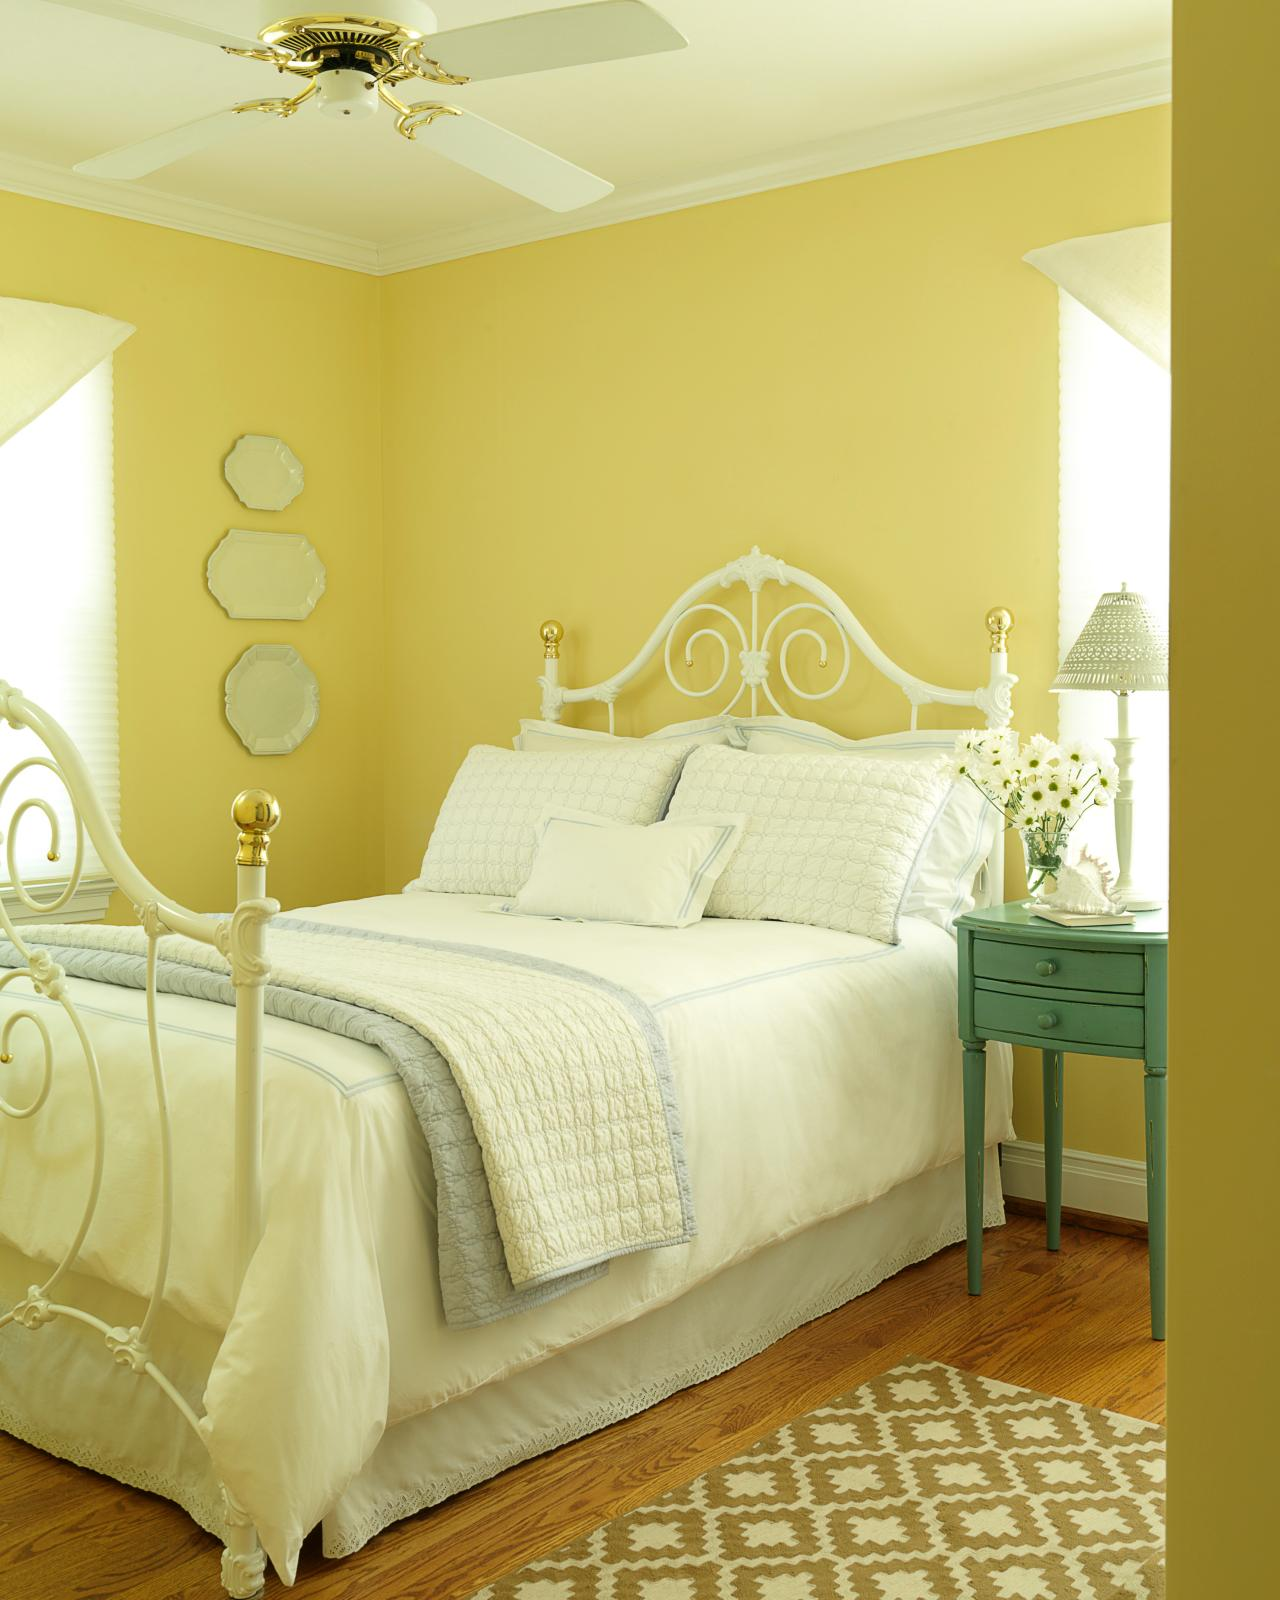 30 Beautiful Yellow Bedroom Design Ideas - Decoration Love